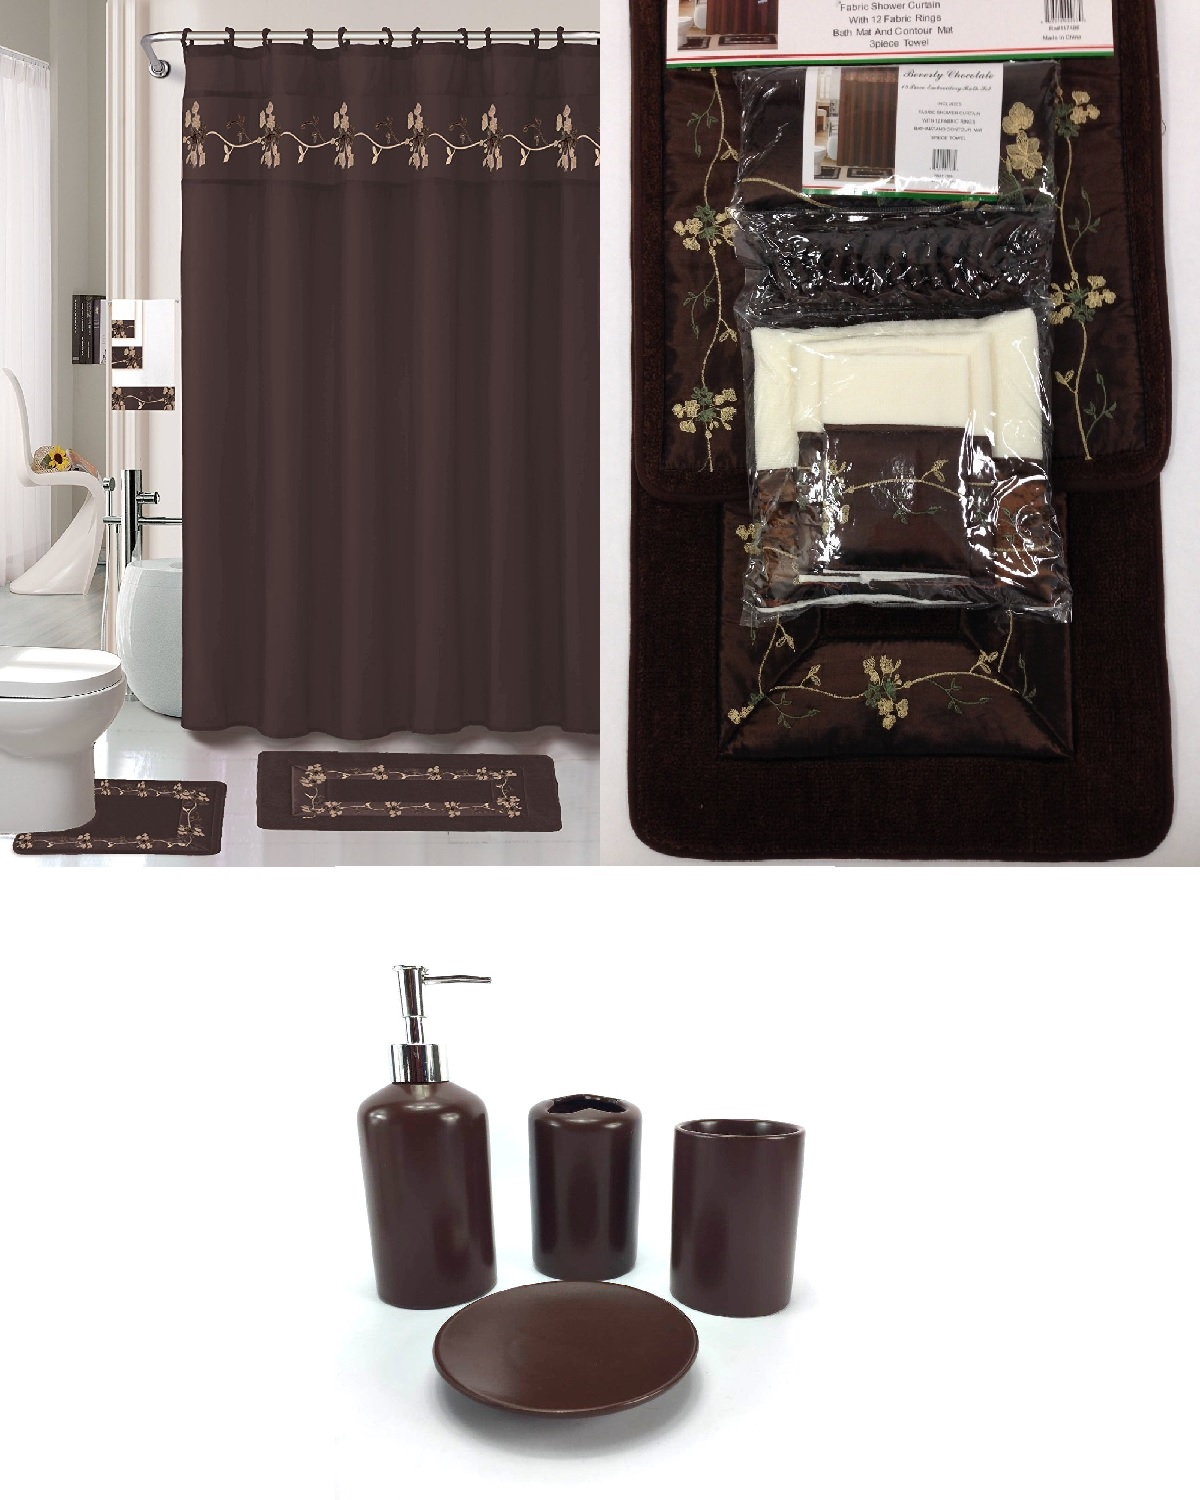 brown bathroom accessories. 22 Piece Bath Accessory Set BEVERLY Chocolate Brown Bathroom Rug + Shower Curtain \u0026 Accessories A